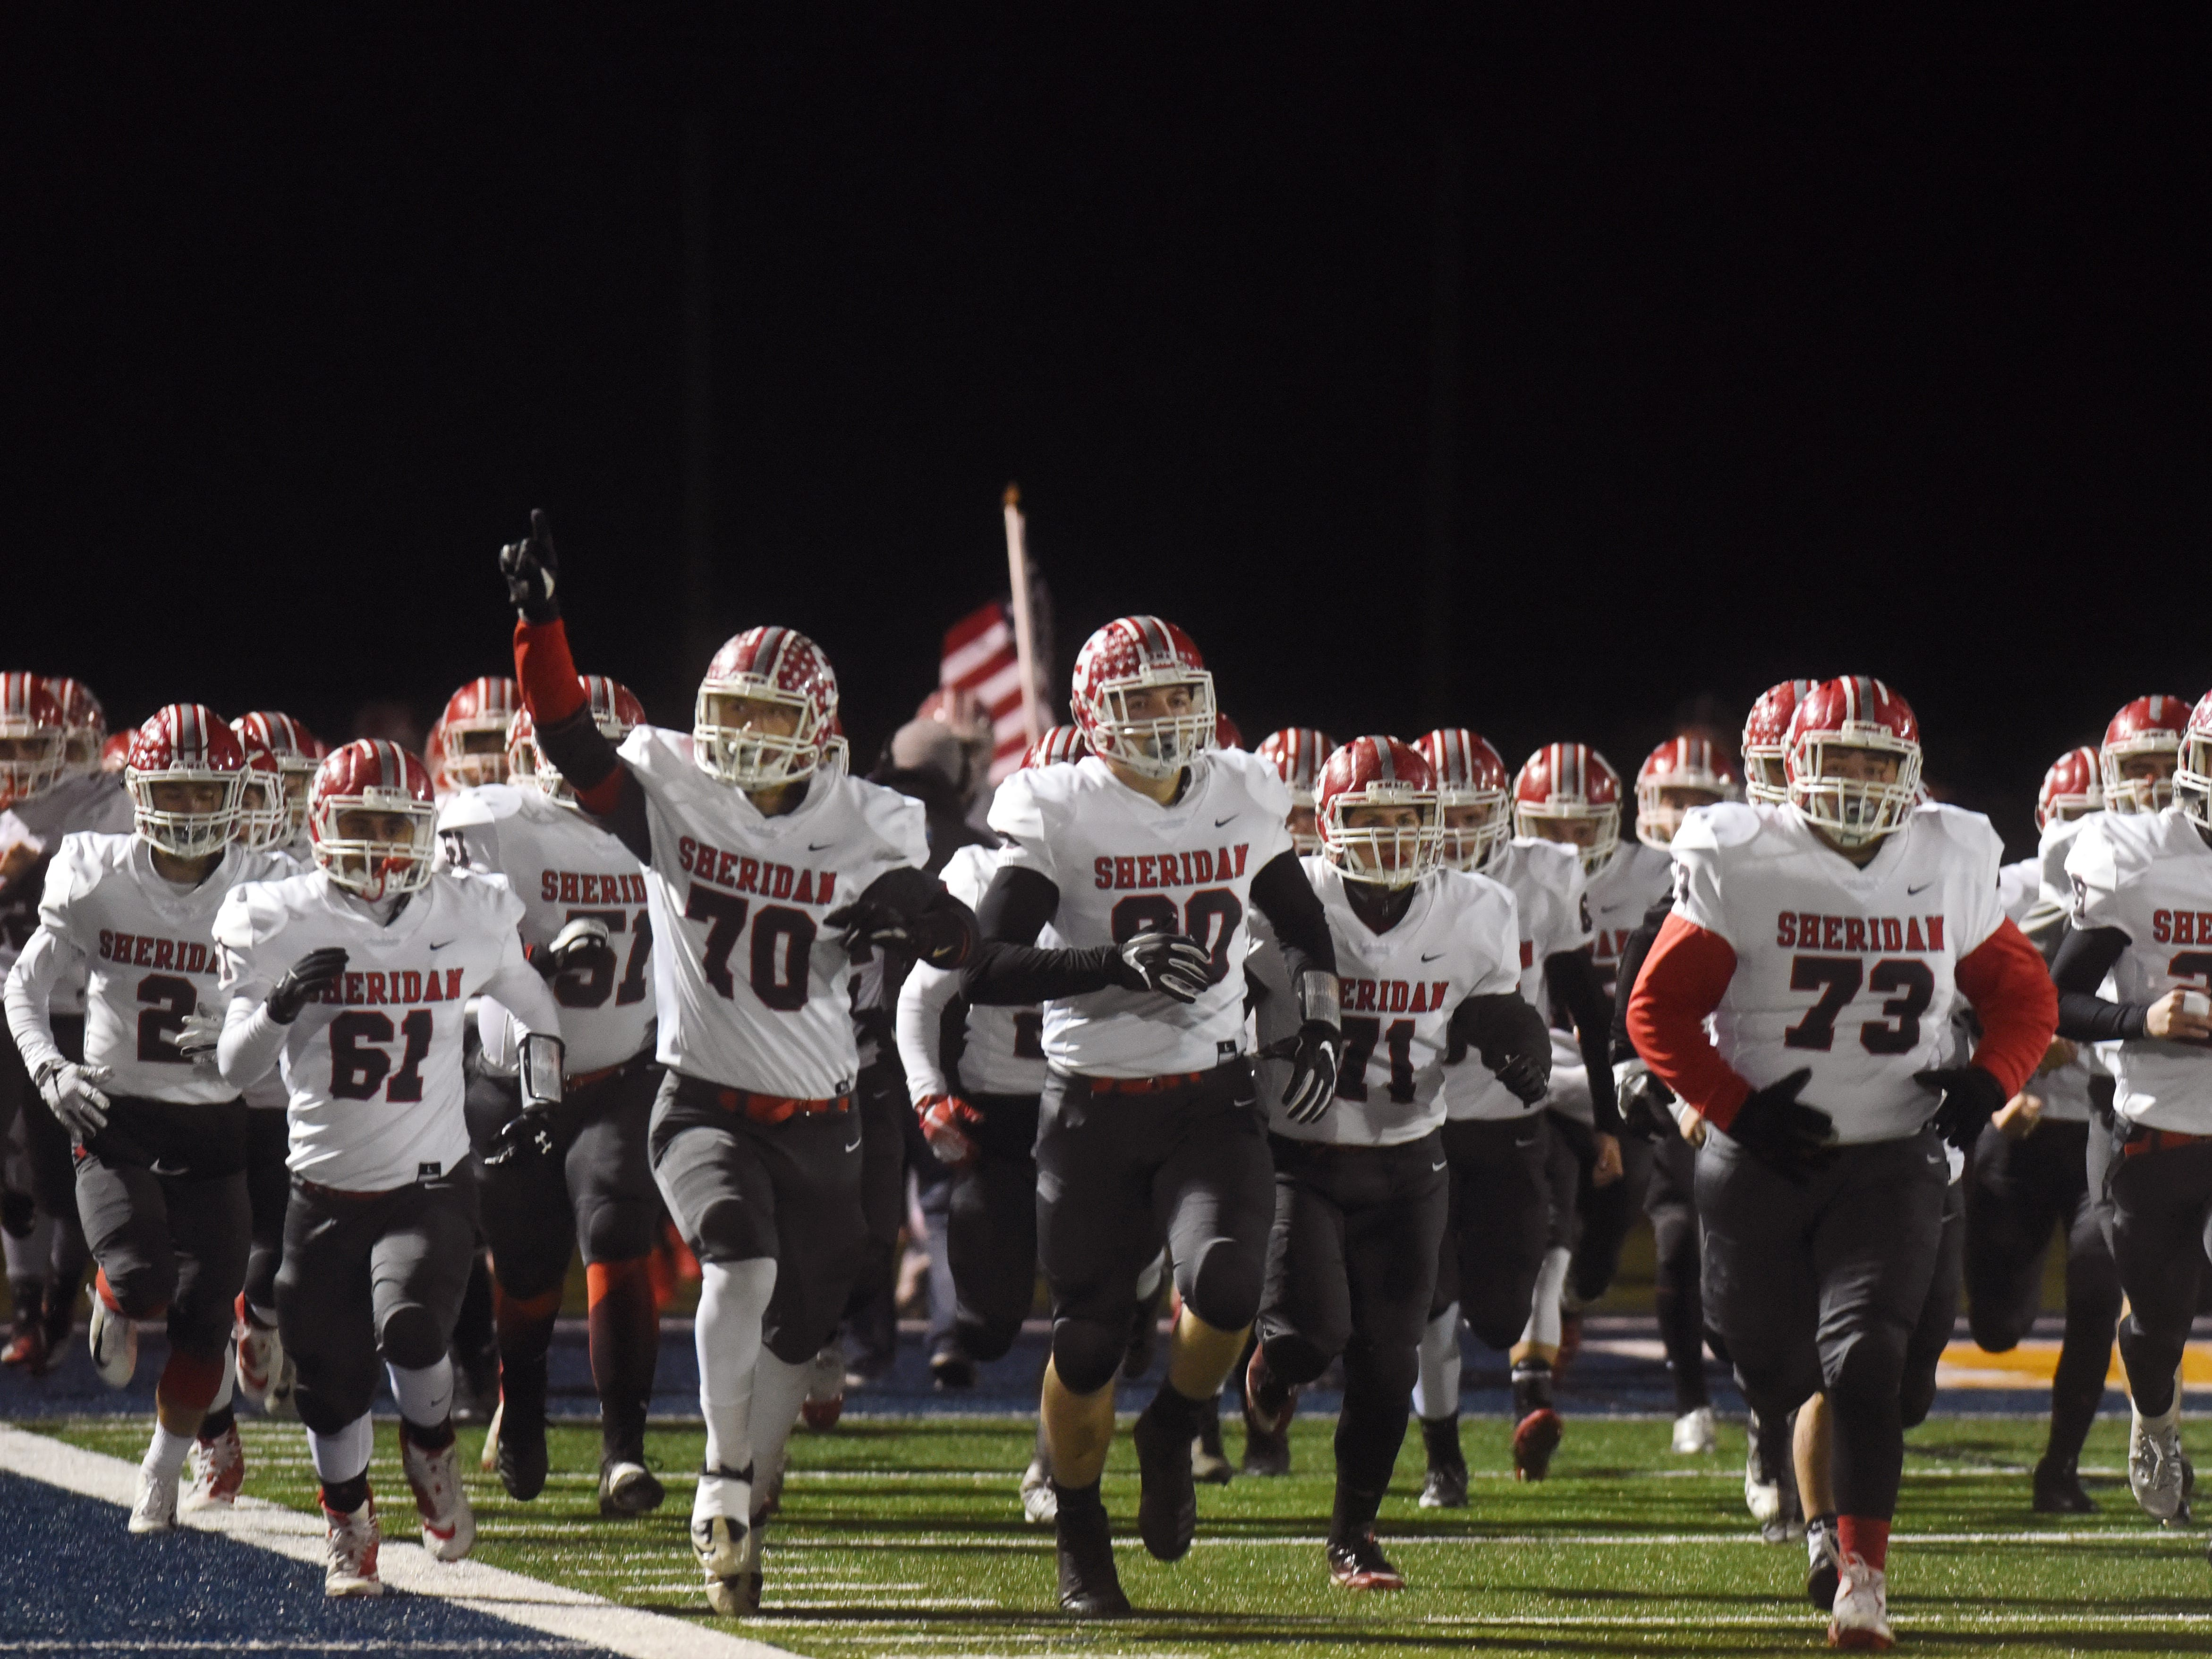 Sheridan runs on to the field prior to its 20-14 loss to Columbus Eastmoor Academy in a Division III, Region 11 final on Friday night in Lancaster.